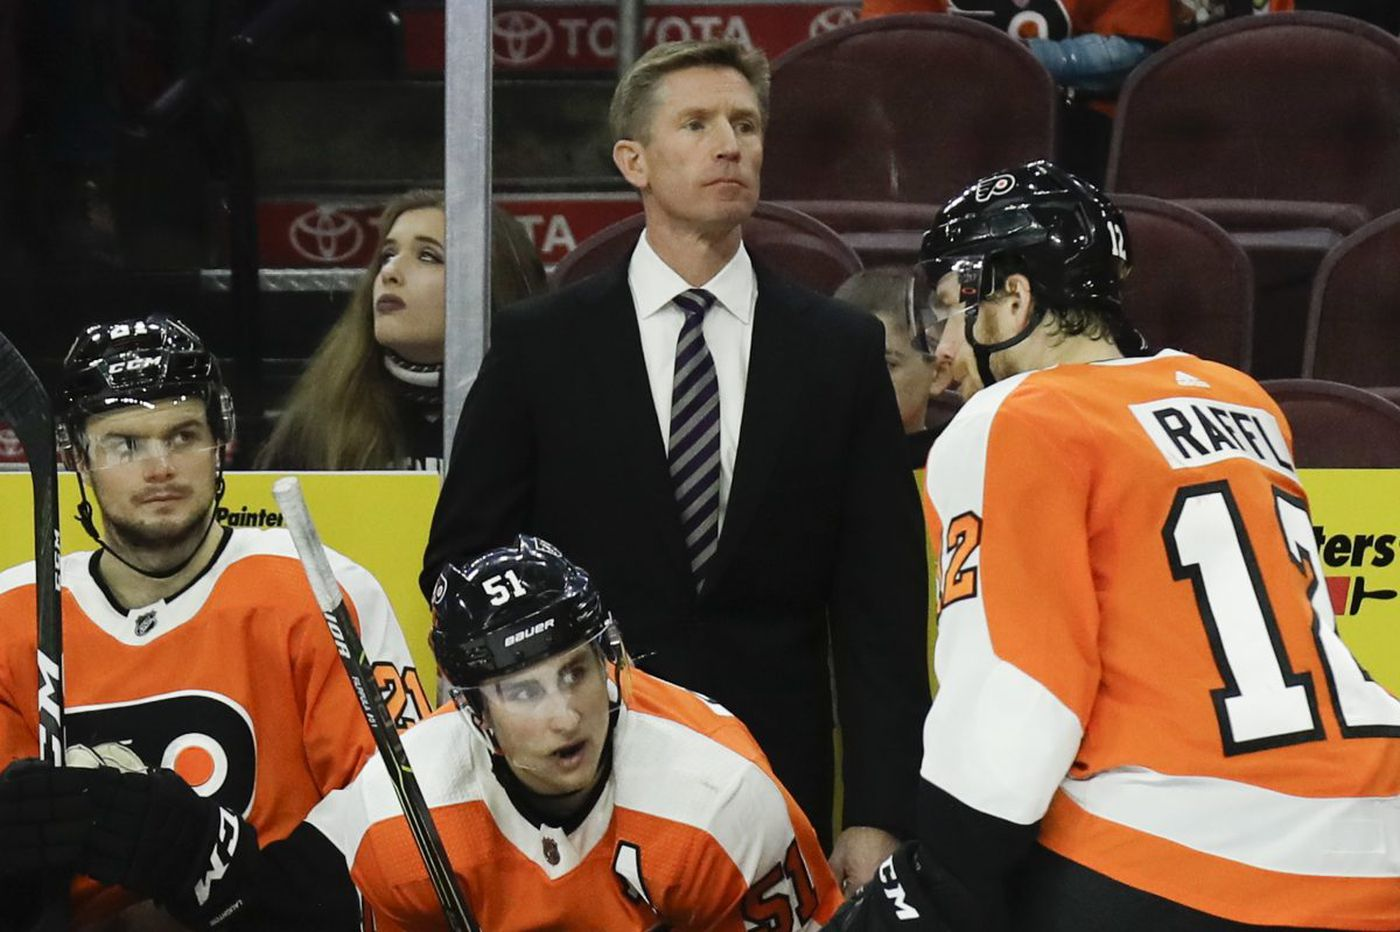 Flyers coach Dave Hakstol isn't going to scream just to satisfy you, and he shouldn't | Mike Sielski